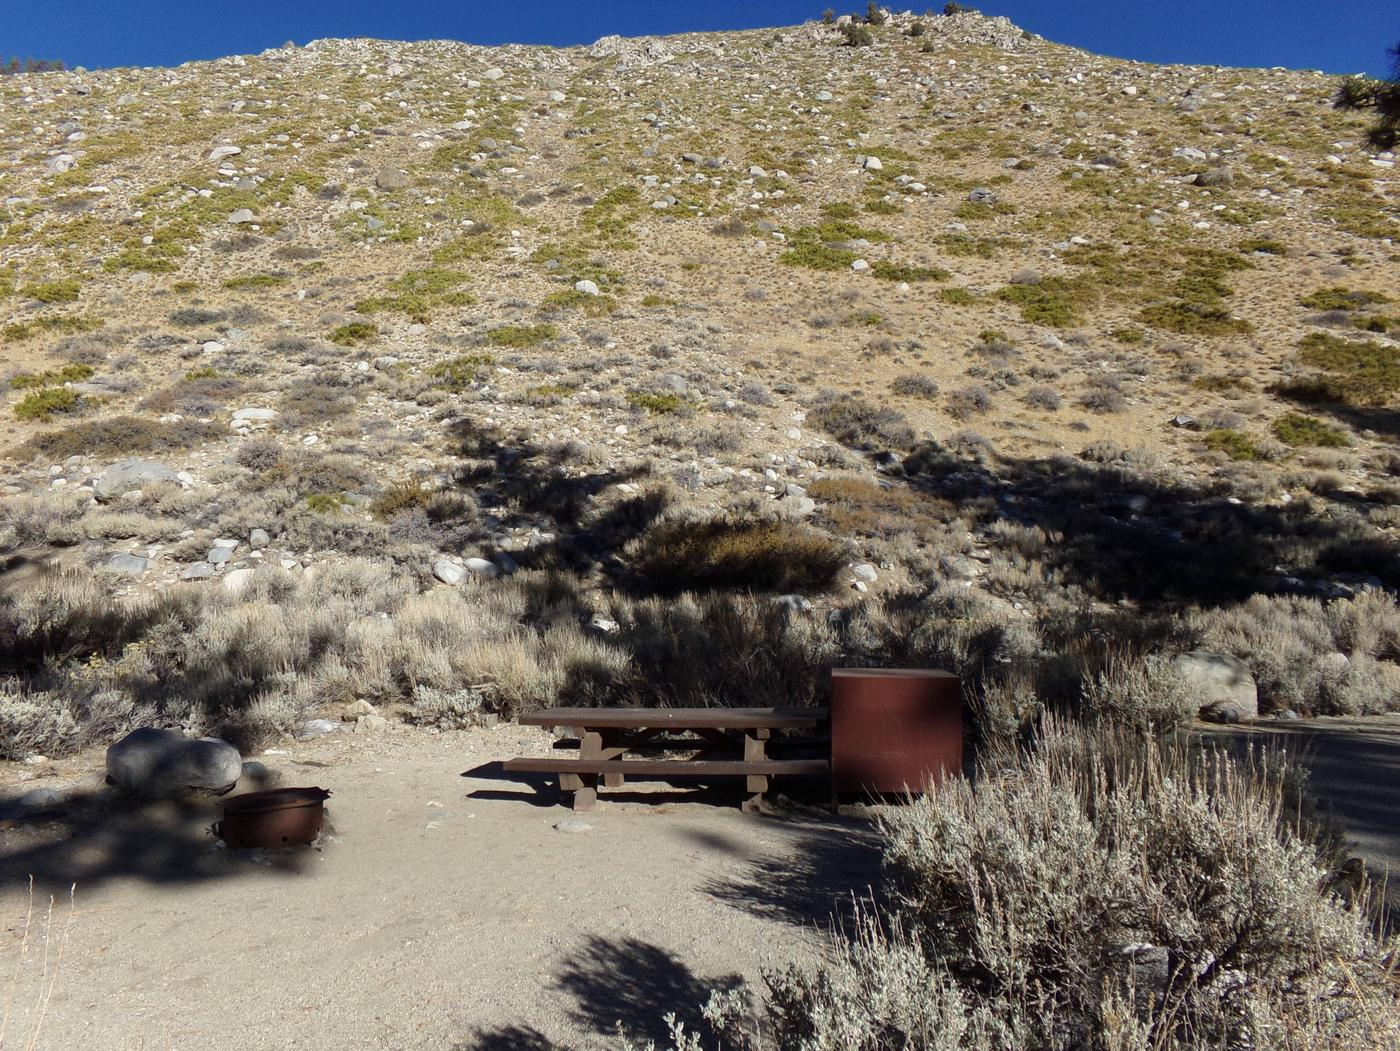 Upper Sage Flat Campground site #13 featuring picnic table, food storage, and fire pit.Upper Sage Flat Campground site #13 featuring picnic table, food storage, and fire pit.